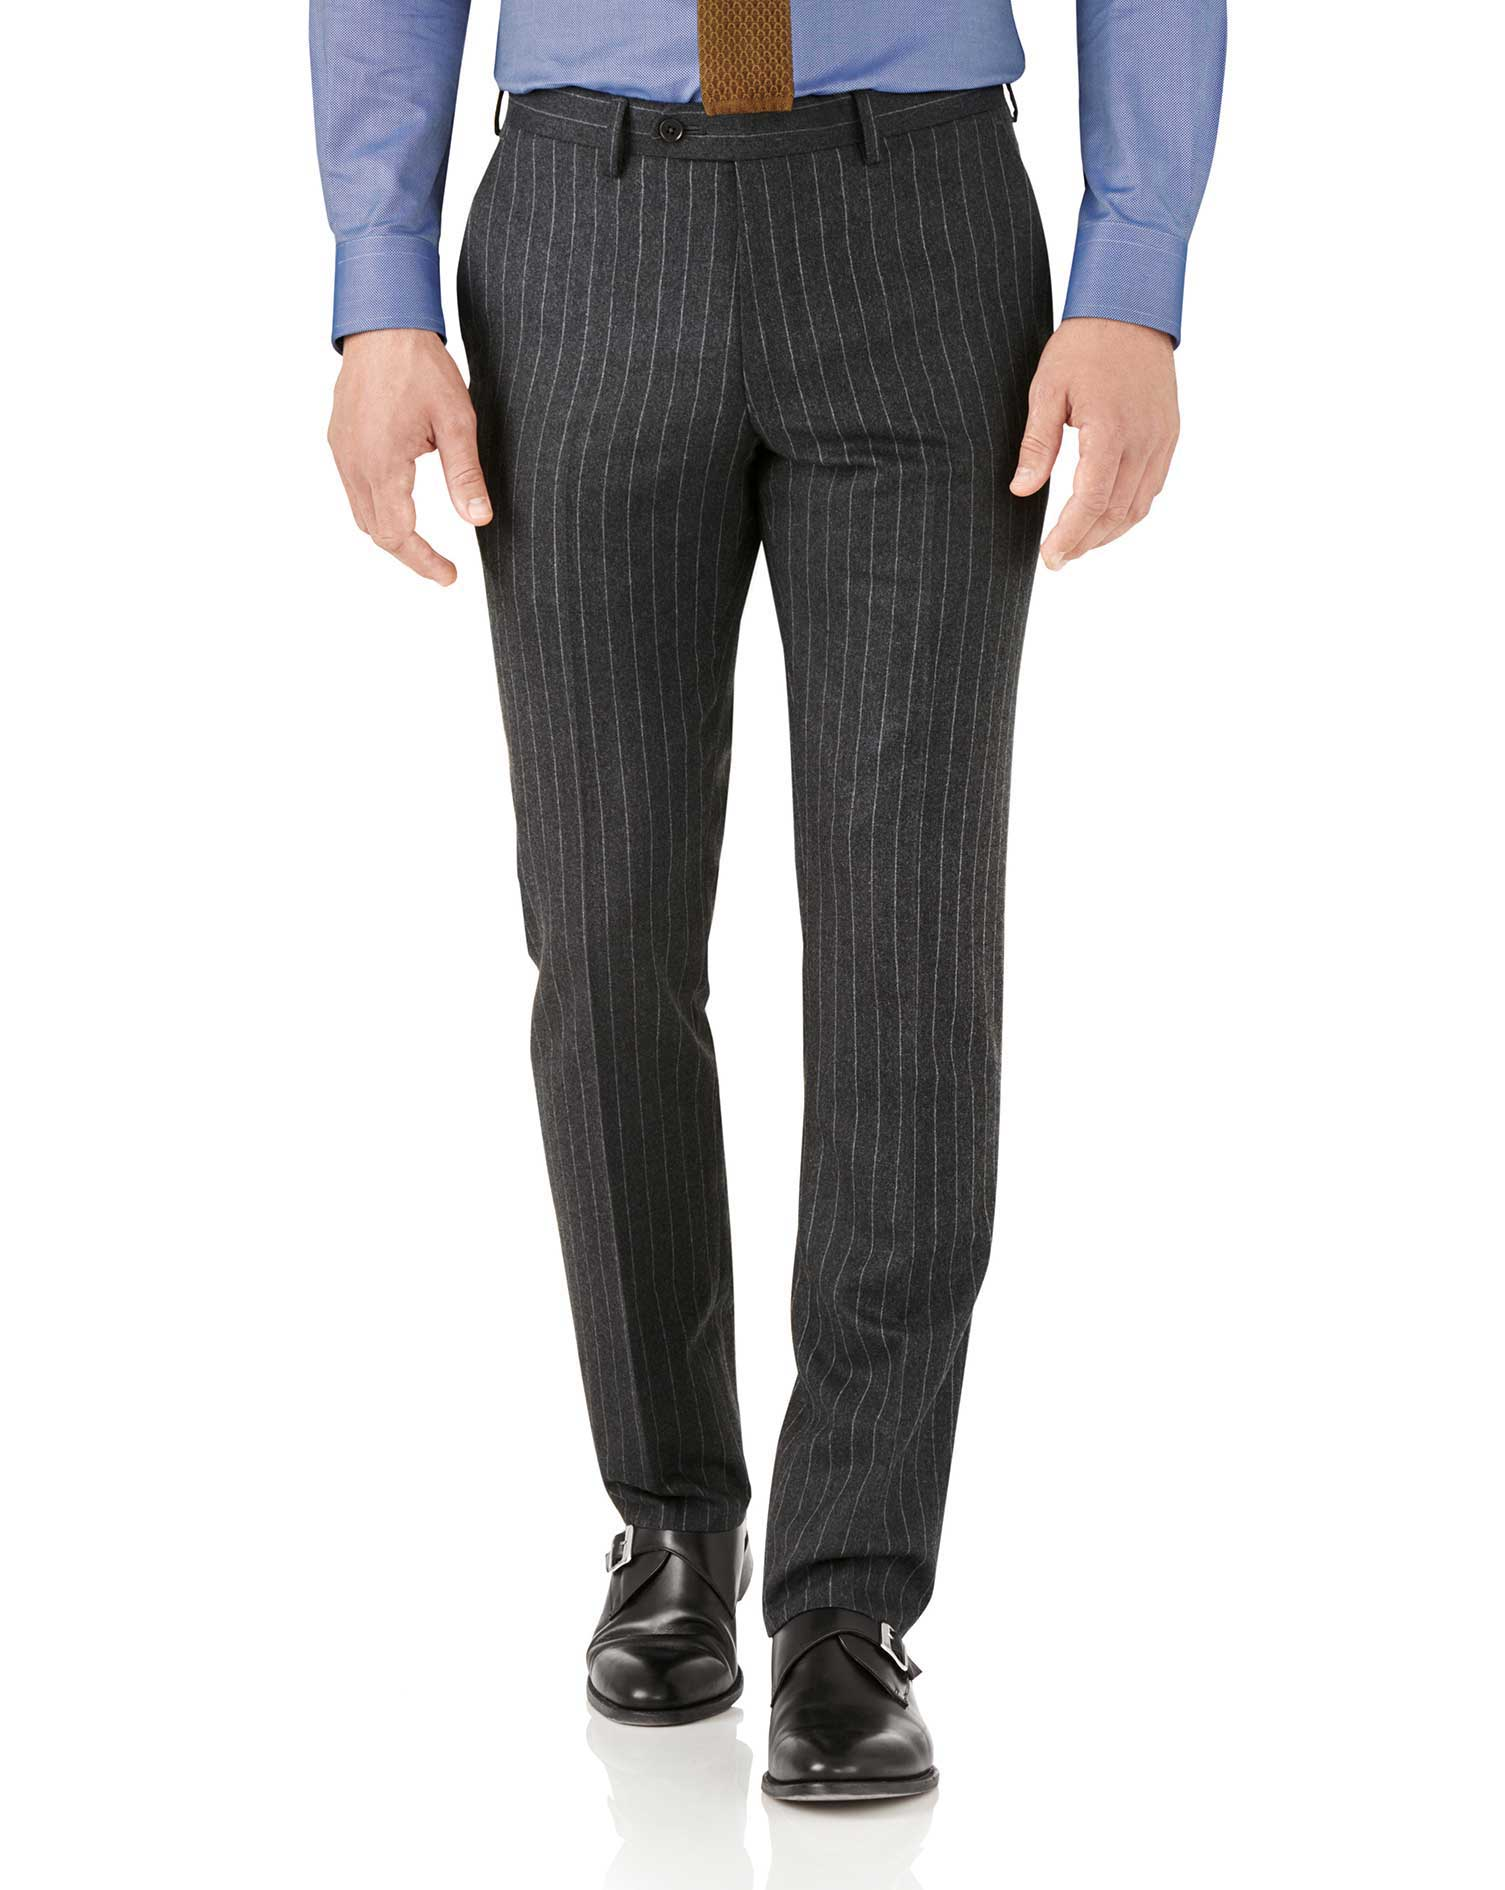 Charcoal Stripe Slim Fit Flannel Business Suit Trousers Size W34 L38 by Charles Tyrwhitt